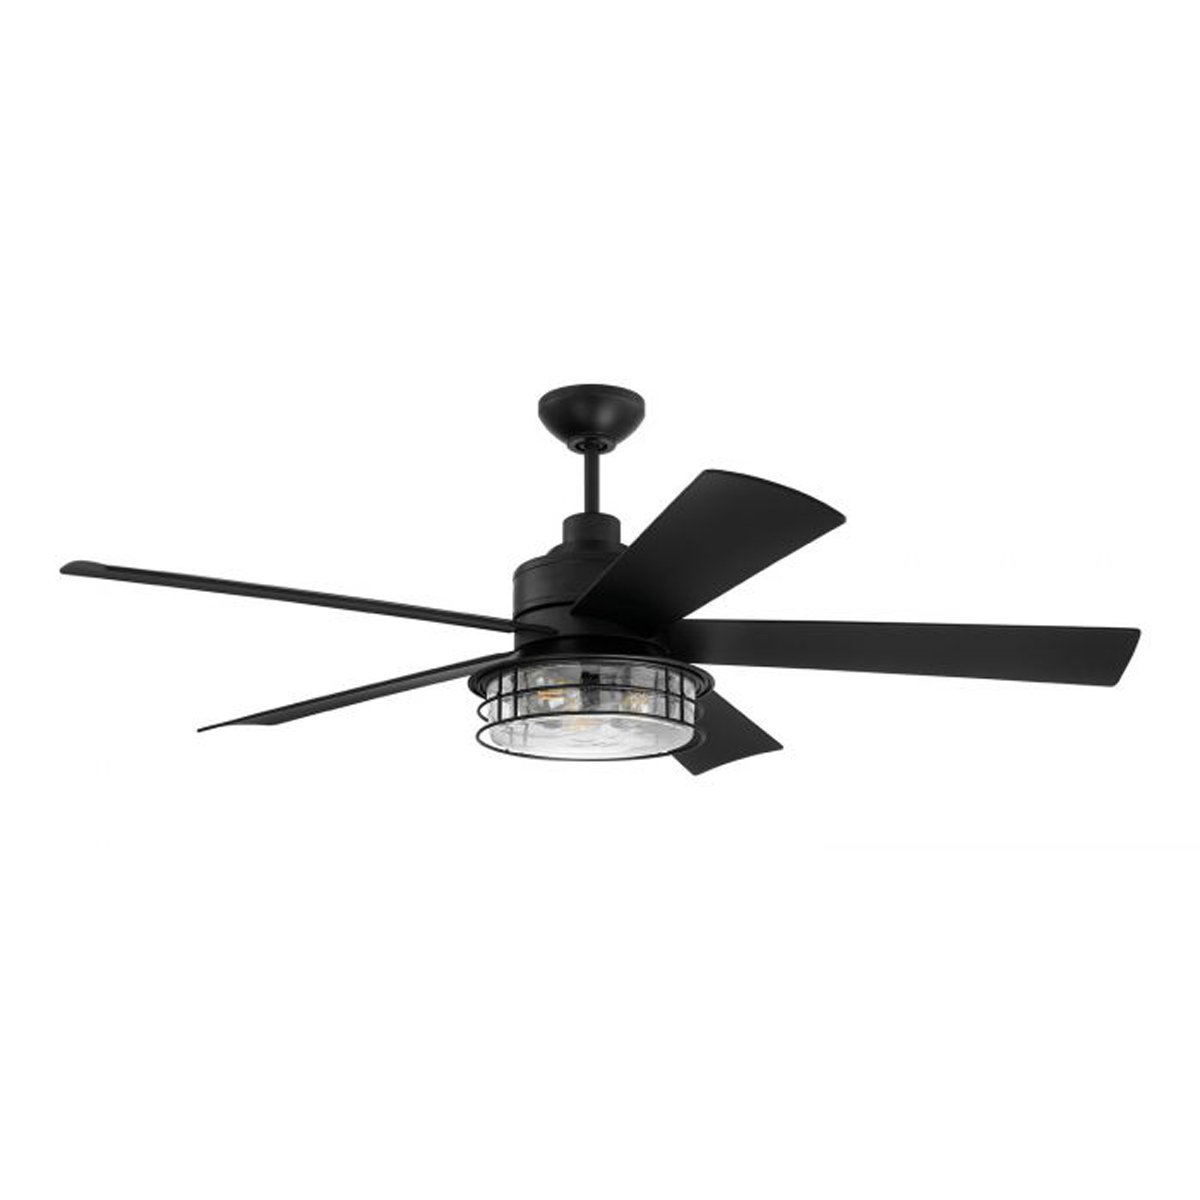 Four Small Changes That Will Have A Big Impact On Your Orient Ceiling Fans